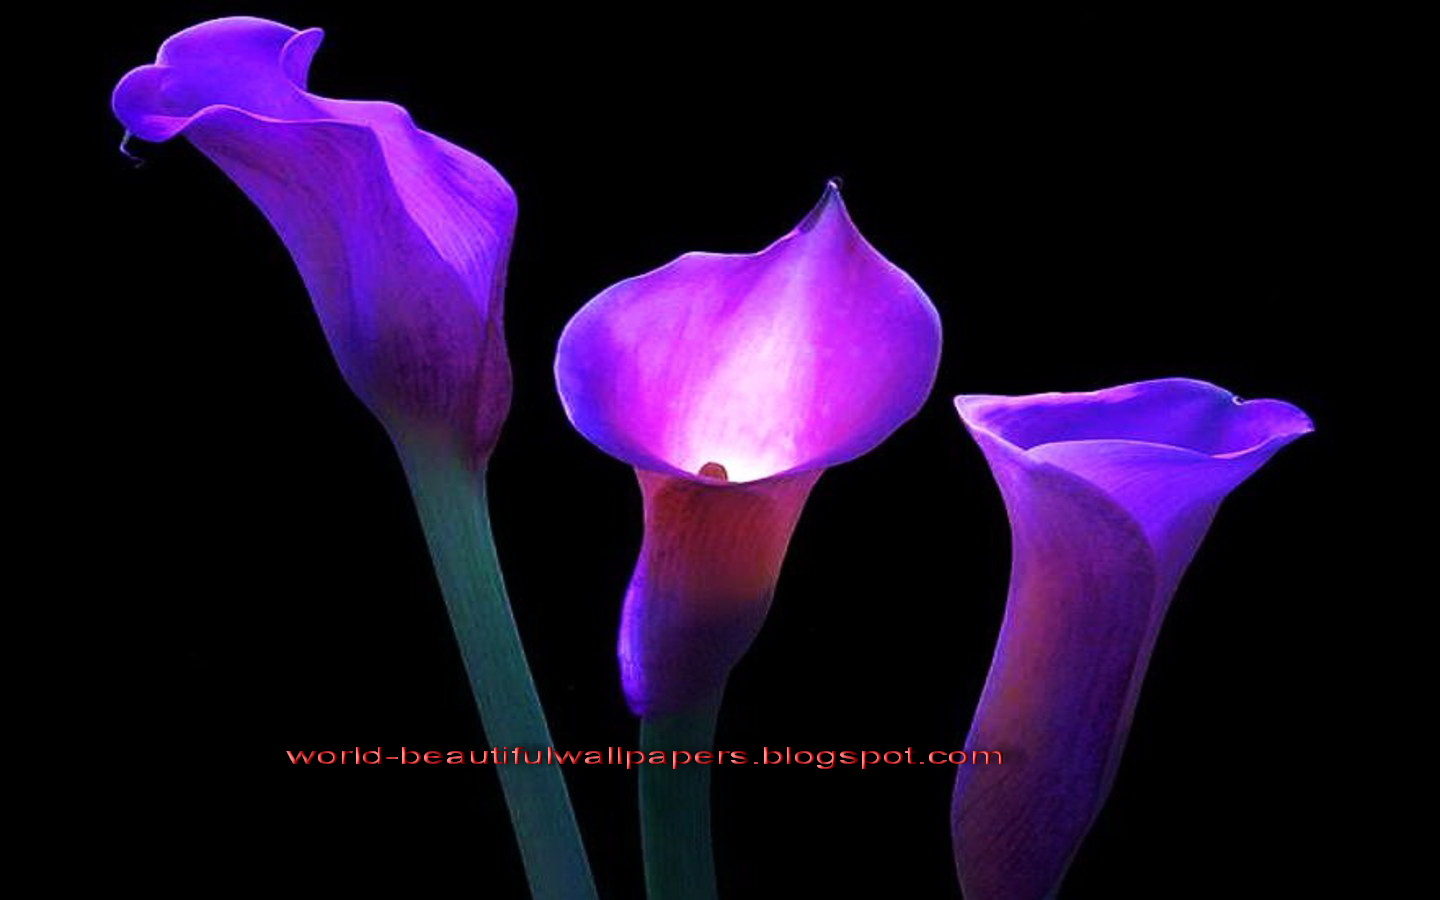 Flowers lilies purple wallpaper wallpapersafari beautiful wallpapers calla lily flowers wallpaper 1440x900 izmirmasajfo